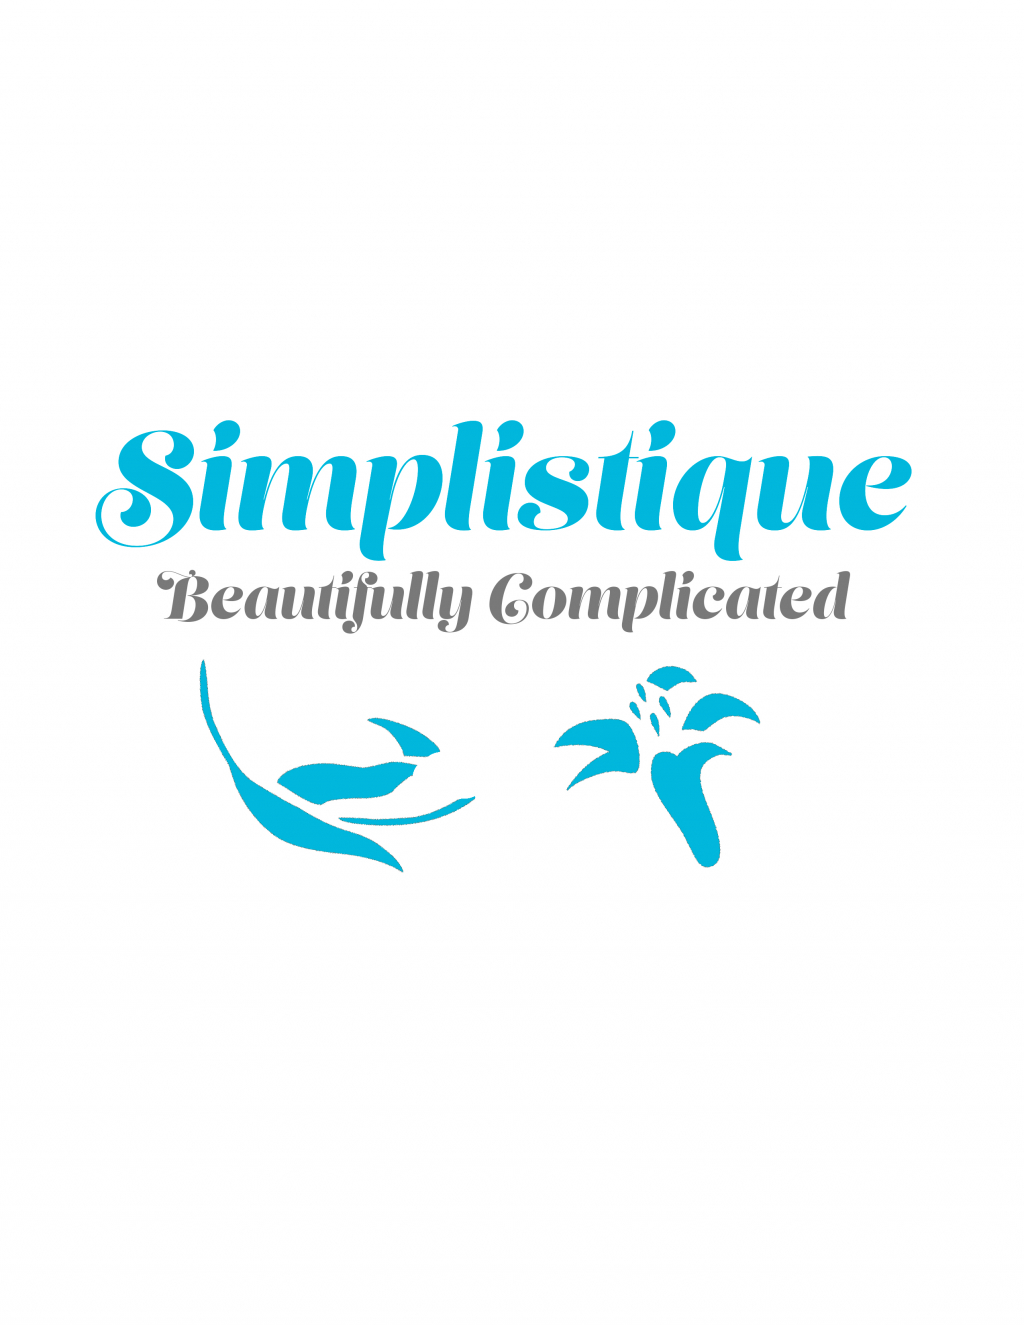 Thumbnail of: Simplistique Design T-shirt